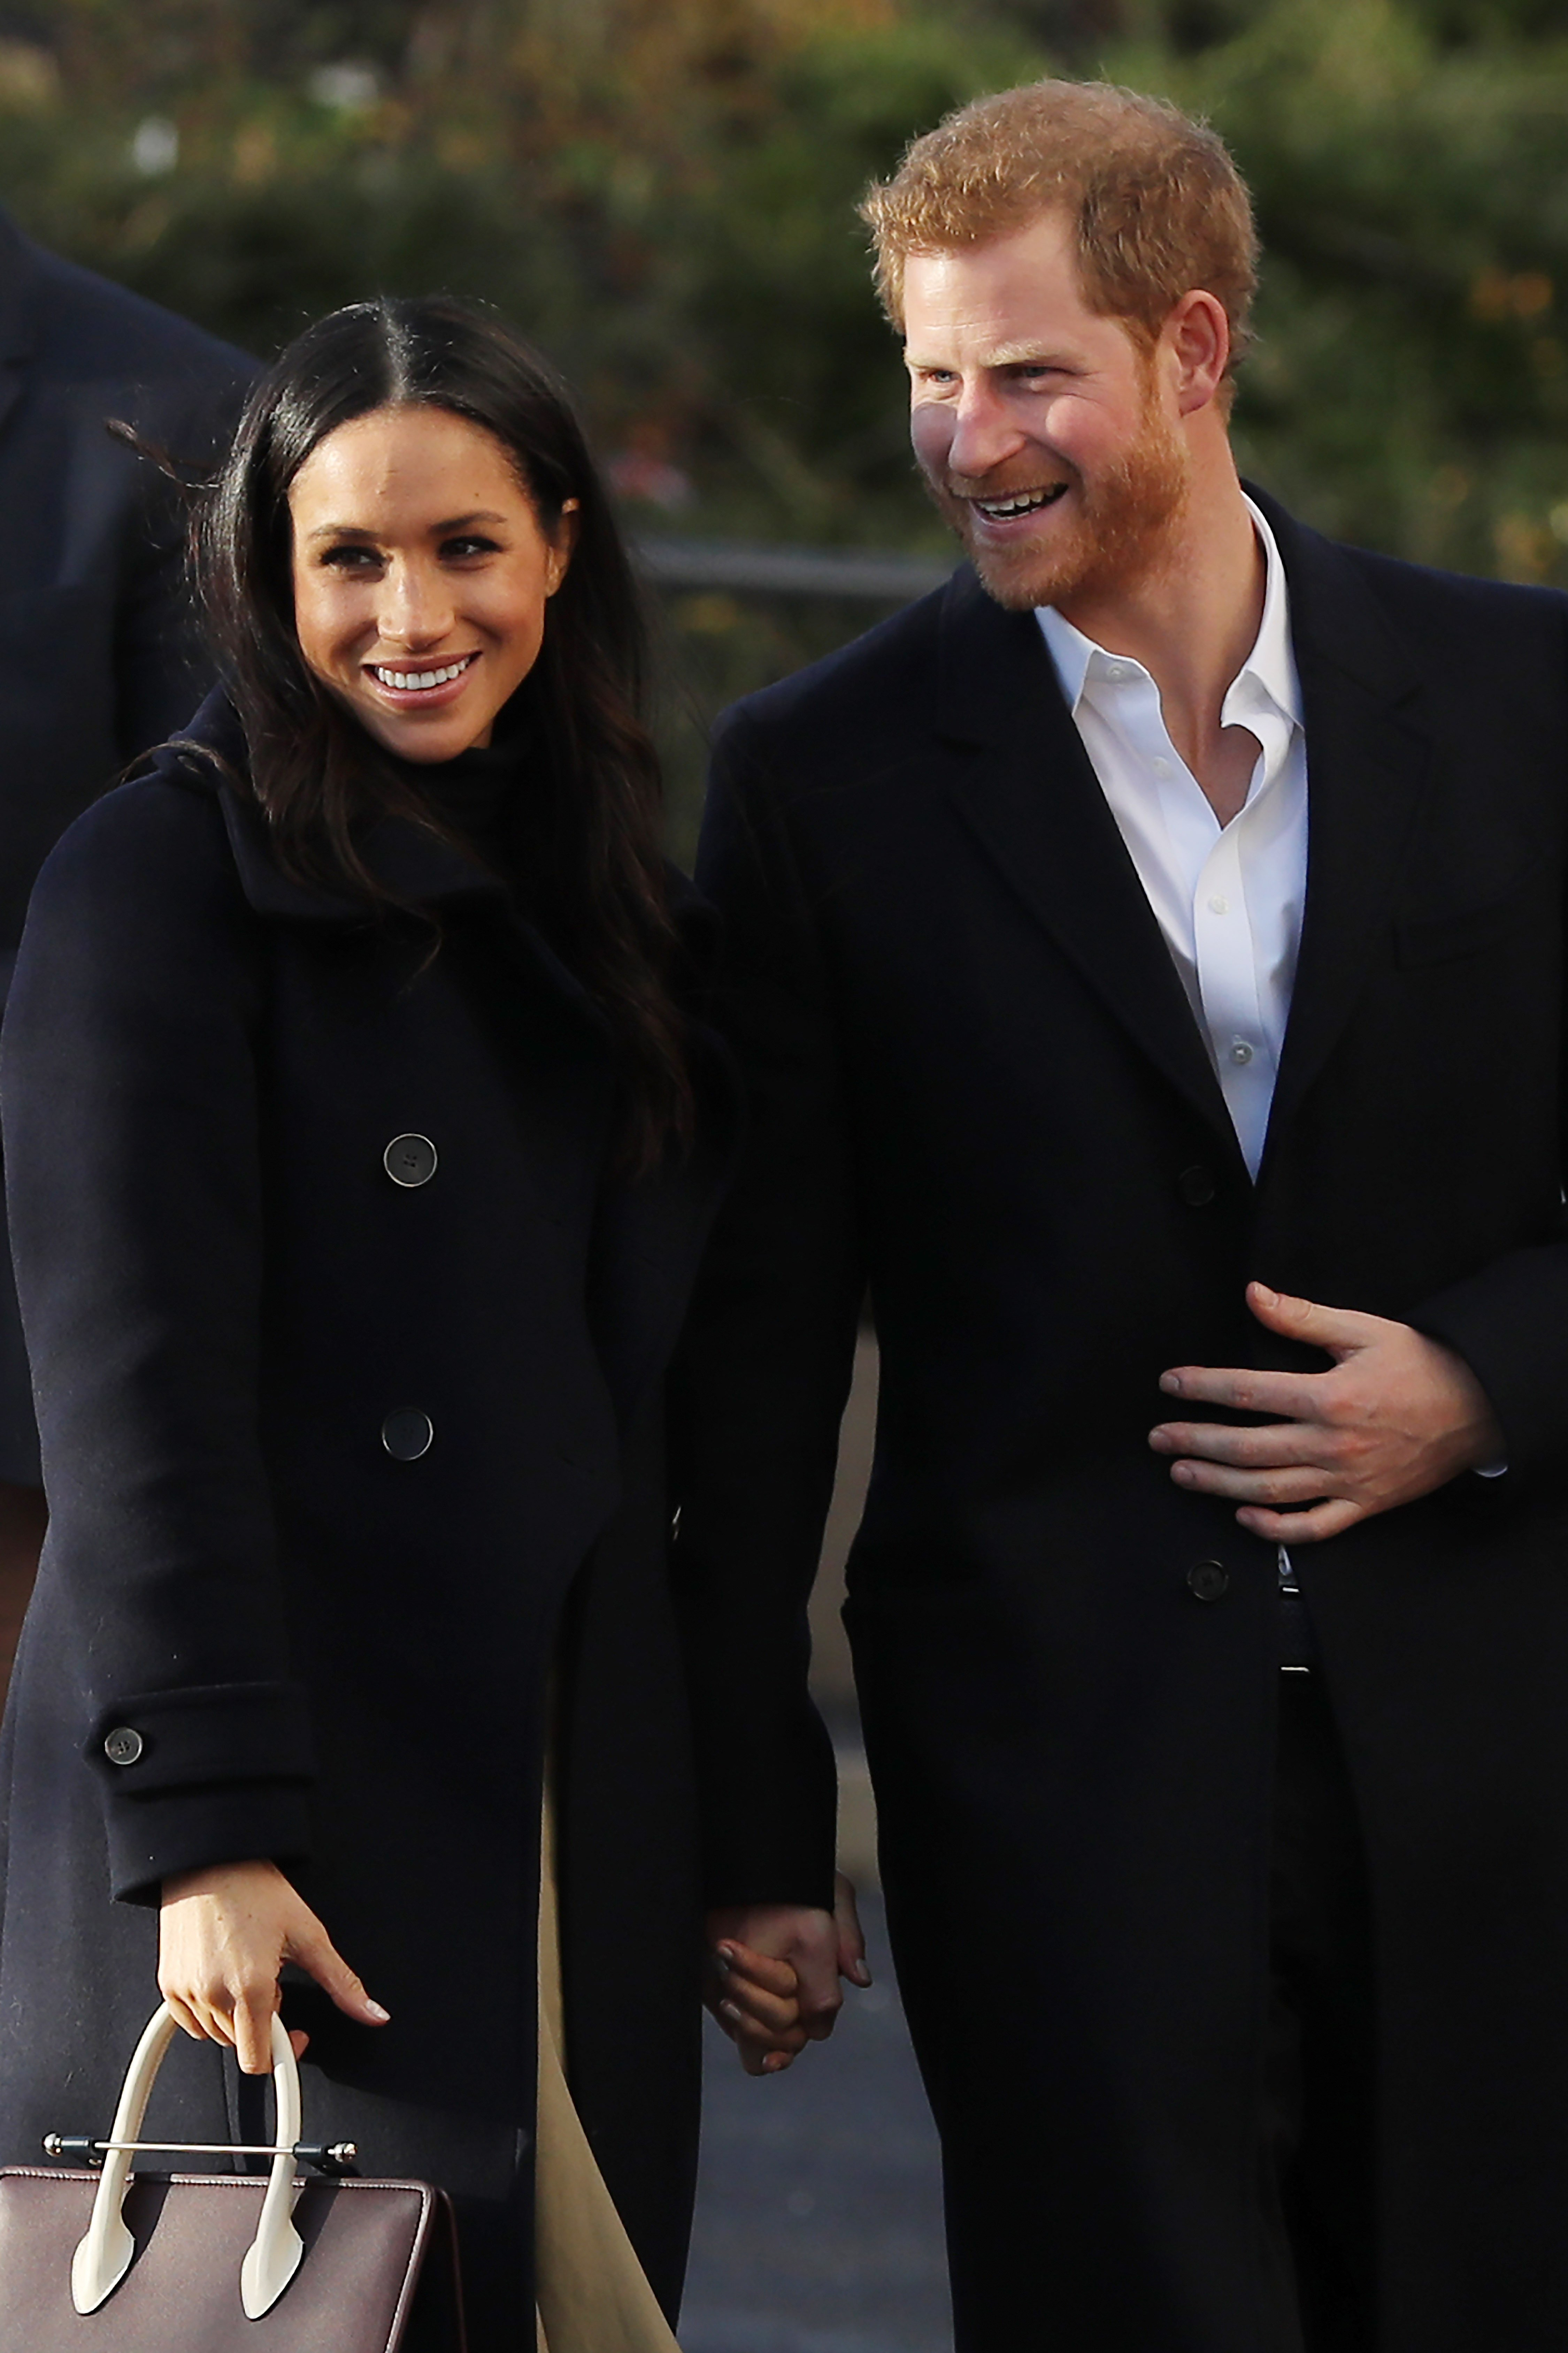 Prince Harry and Meghan Markle, visit the Nottingham Academy as part of their first official public engagements together on December 1, 2017 in Nottingham, England | Photo: Getty Images